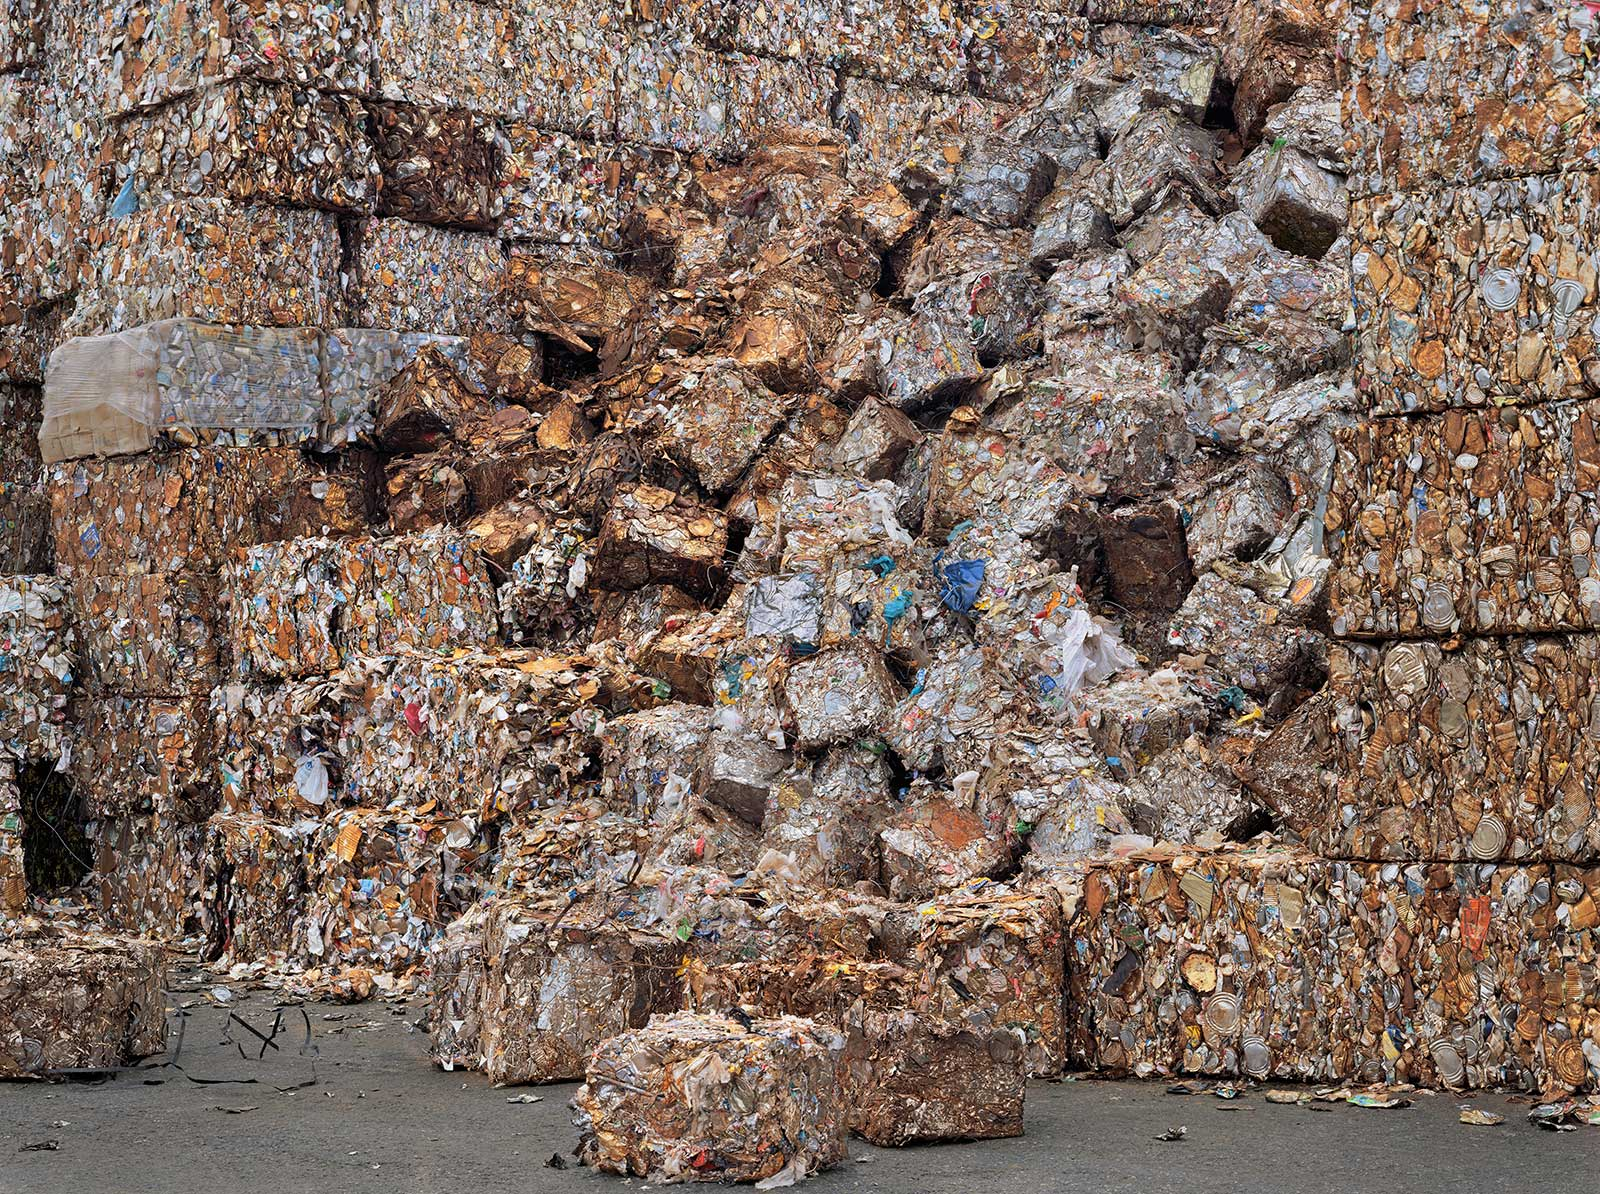 compacted trash in recycling yard